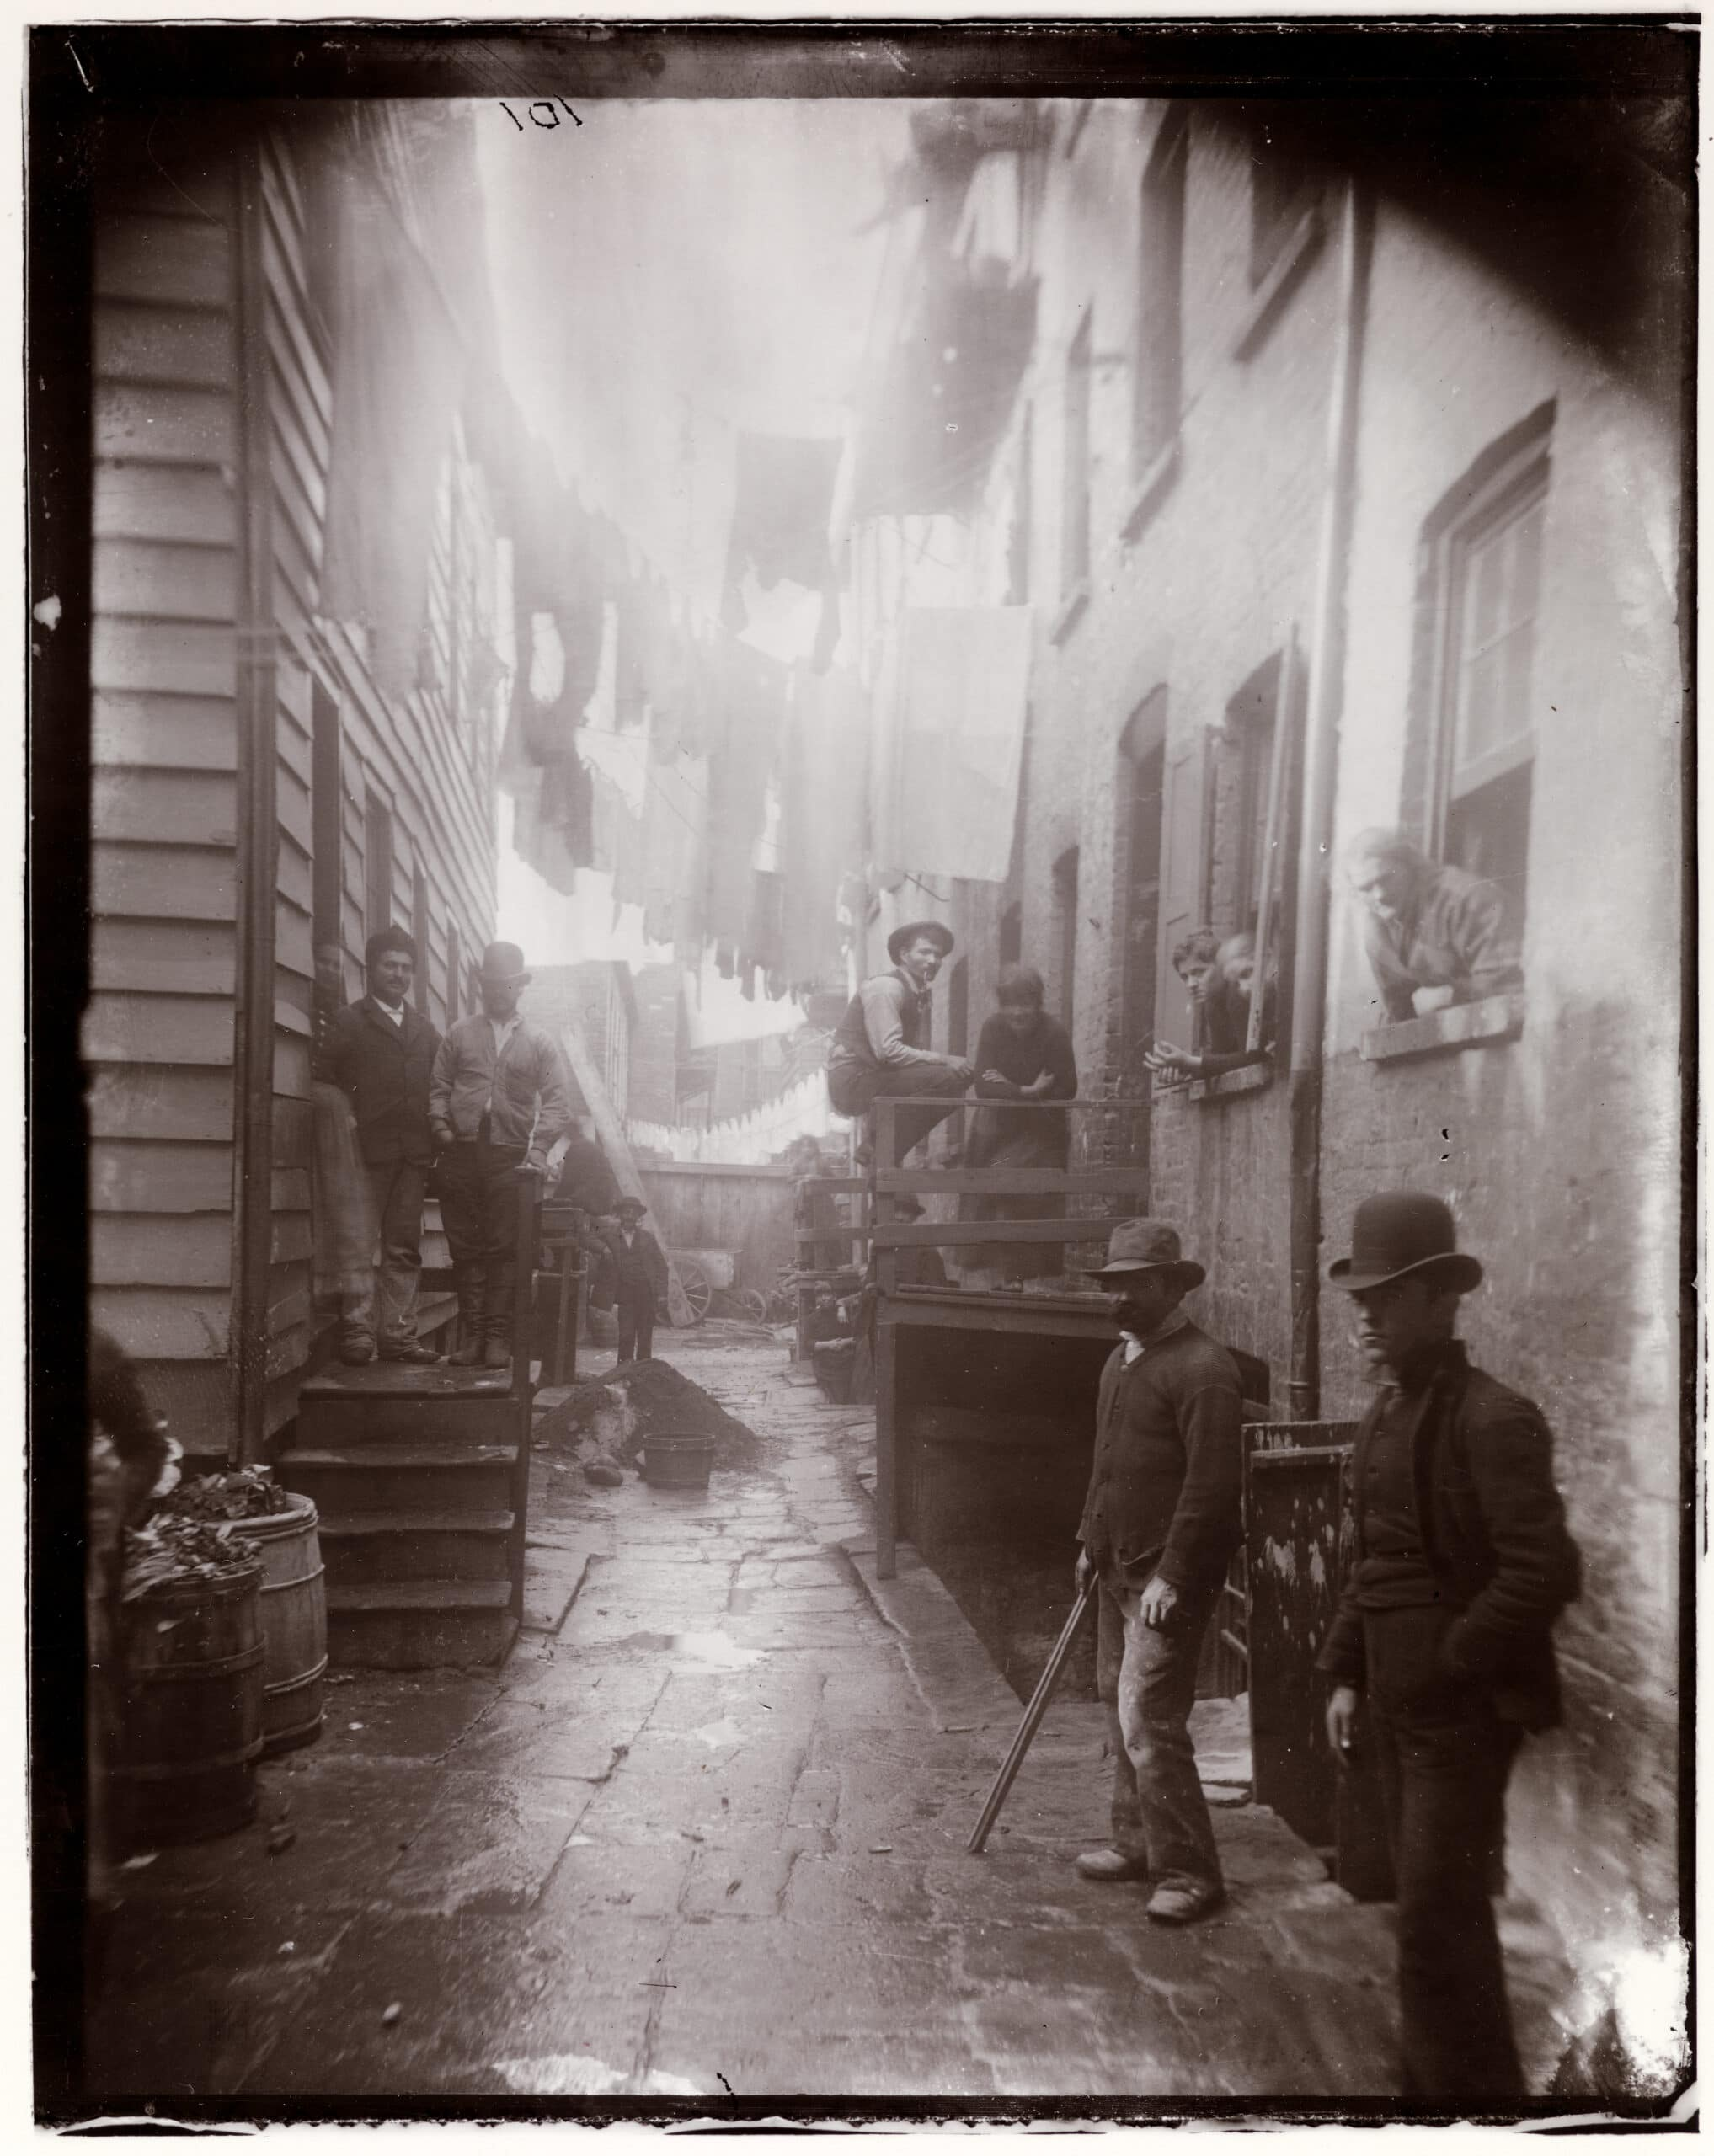 Jacob A. Riis, Bandits' Roost, 1887-1888; reproduction on modern gelatin printing out paper, original 5 x 4 inches; From the Collection of the Museum of the City of New York, 90.13.4.104.